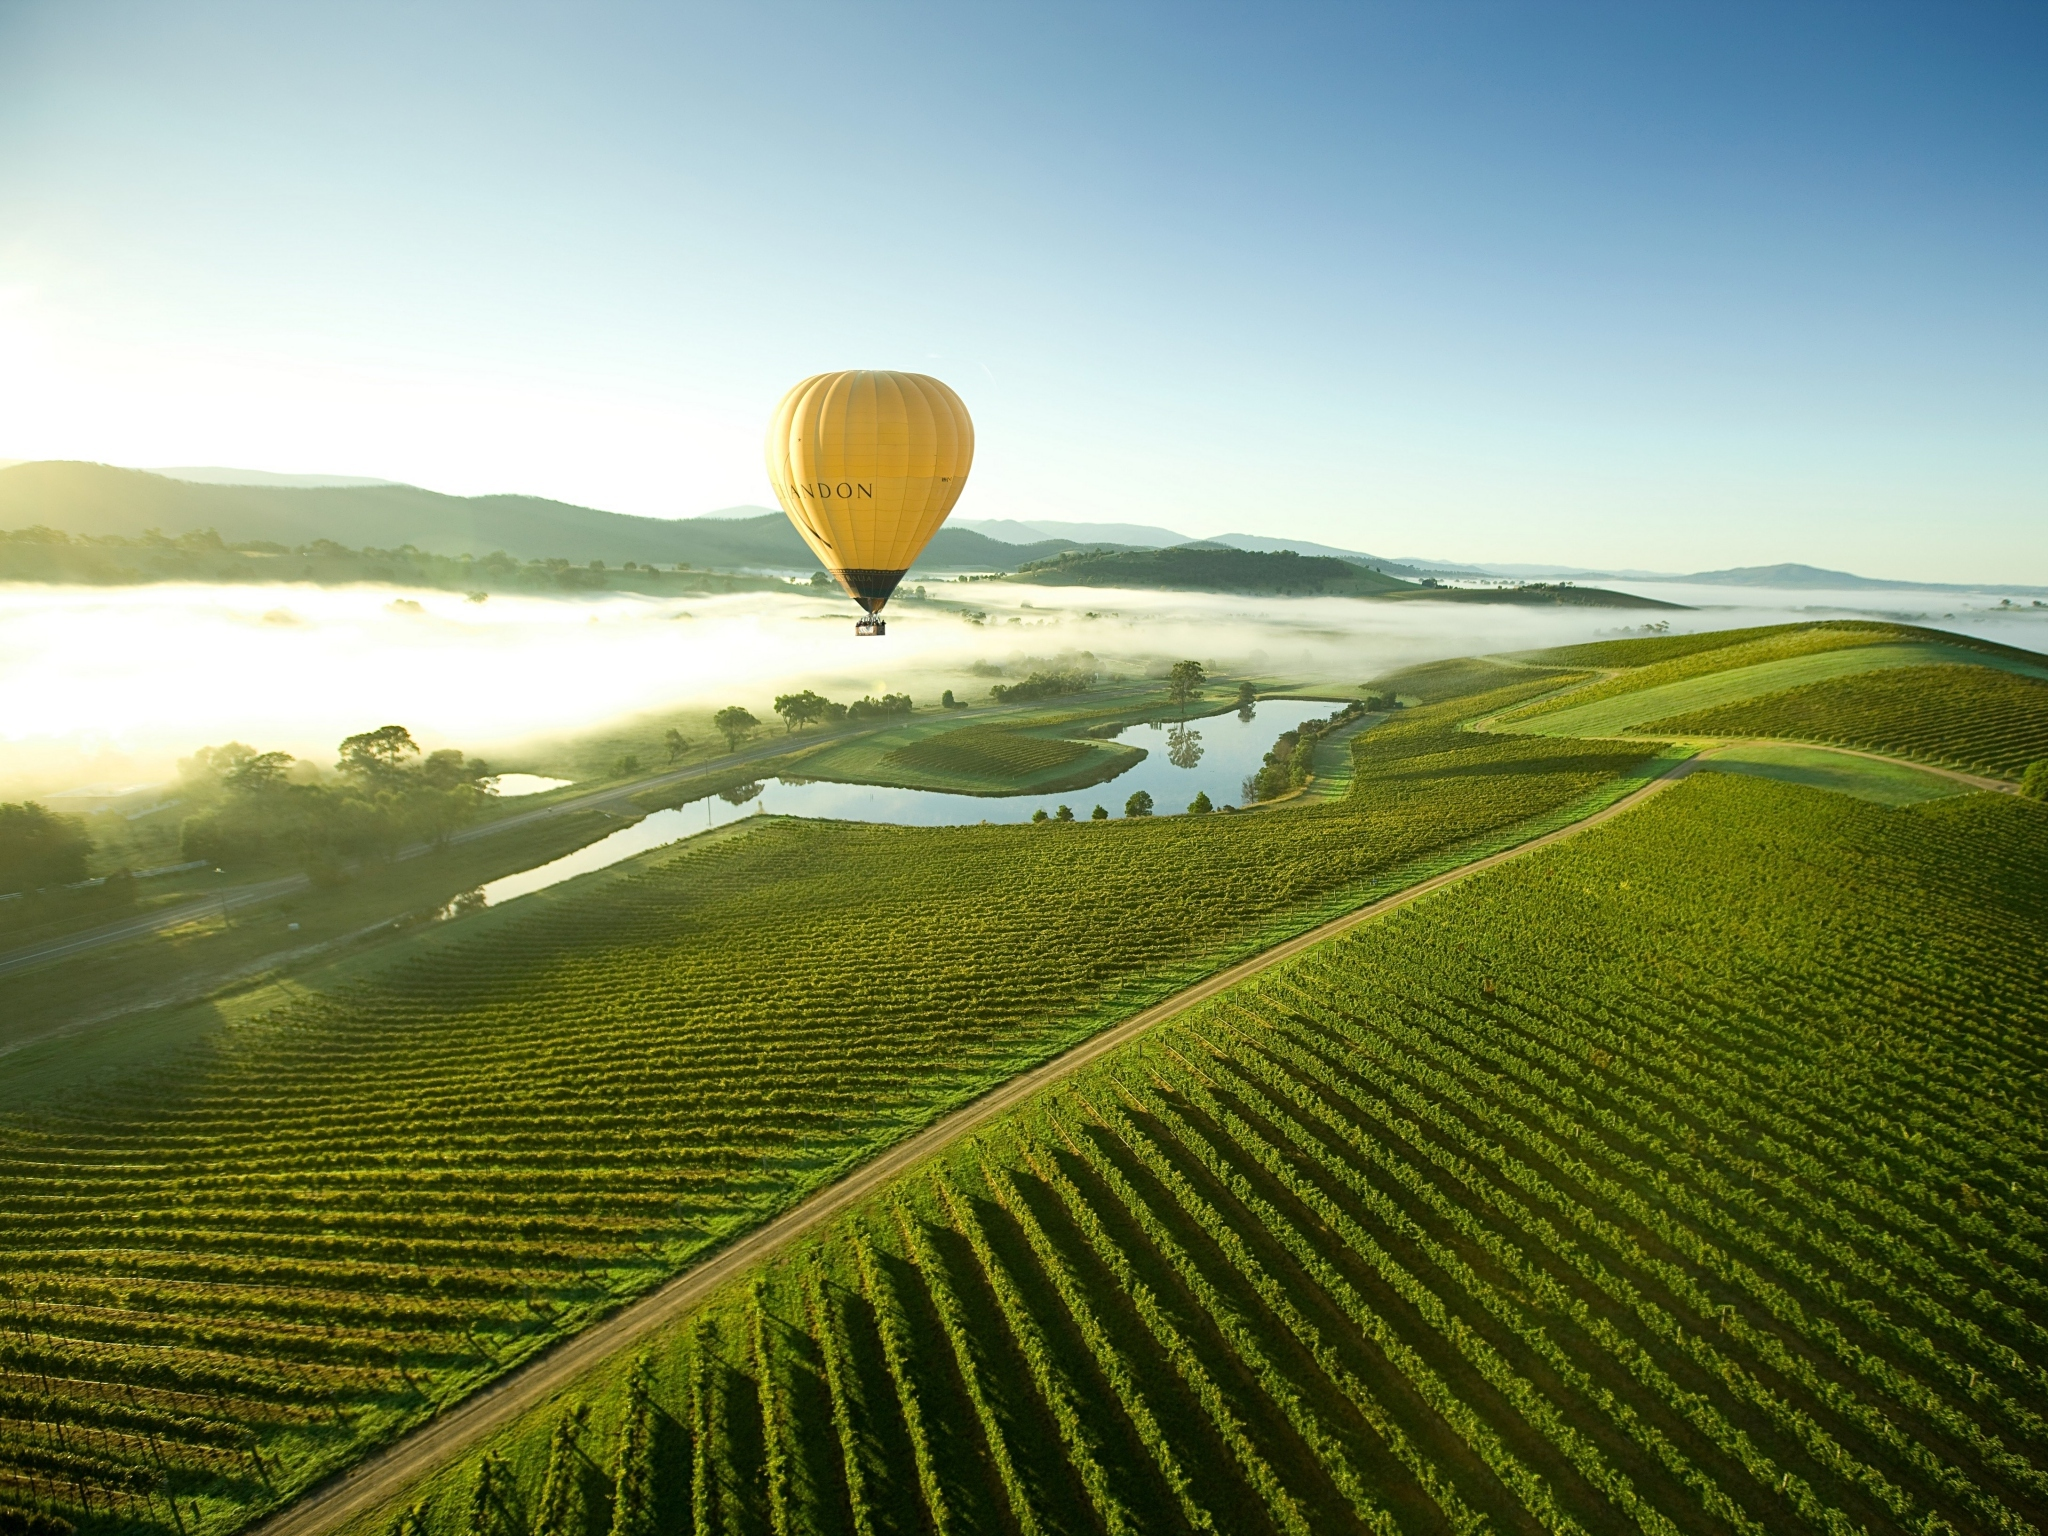 A hot air balloon floats over the Yarra Valley in Victoria